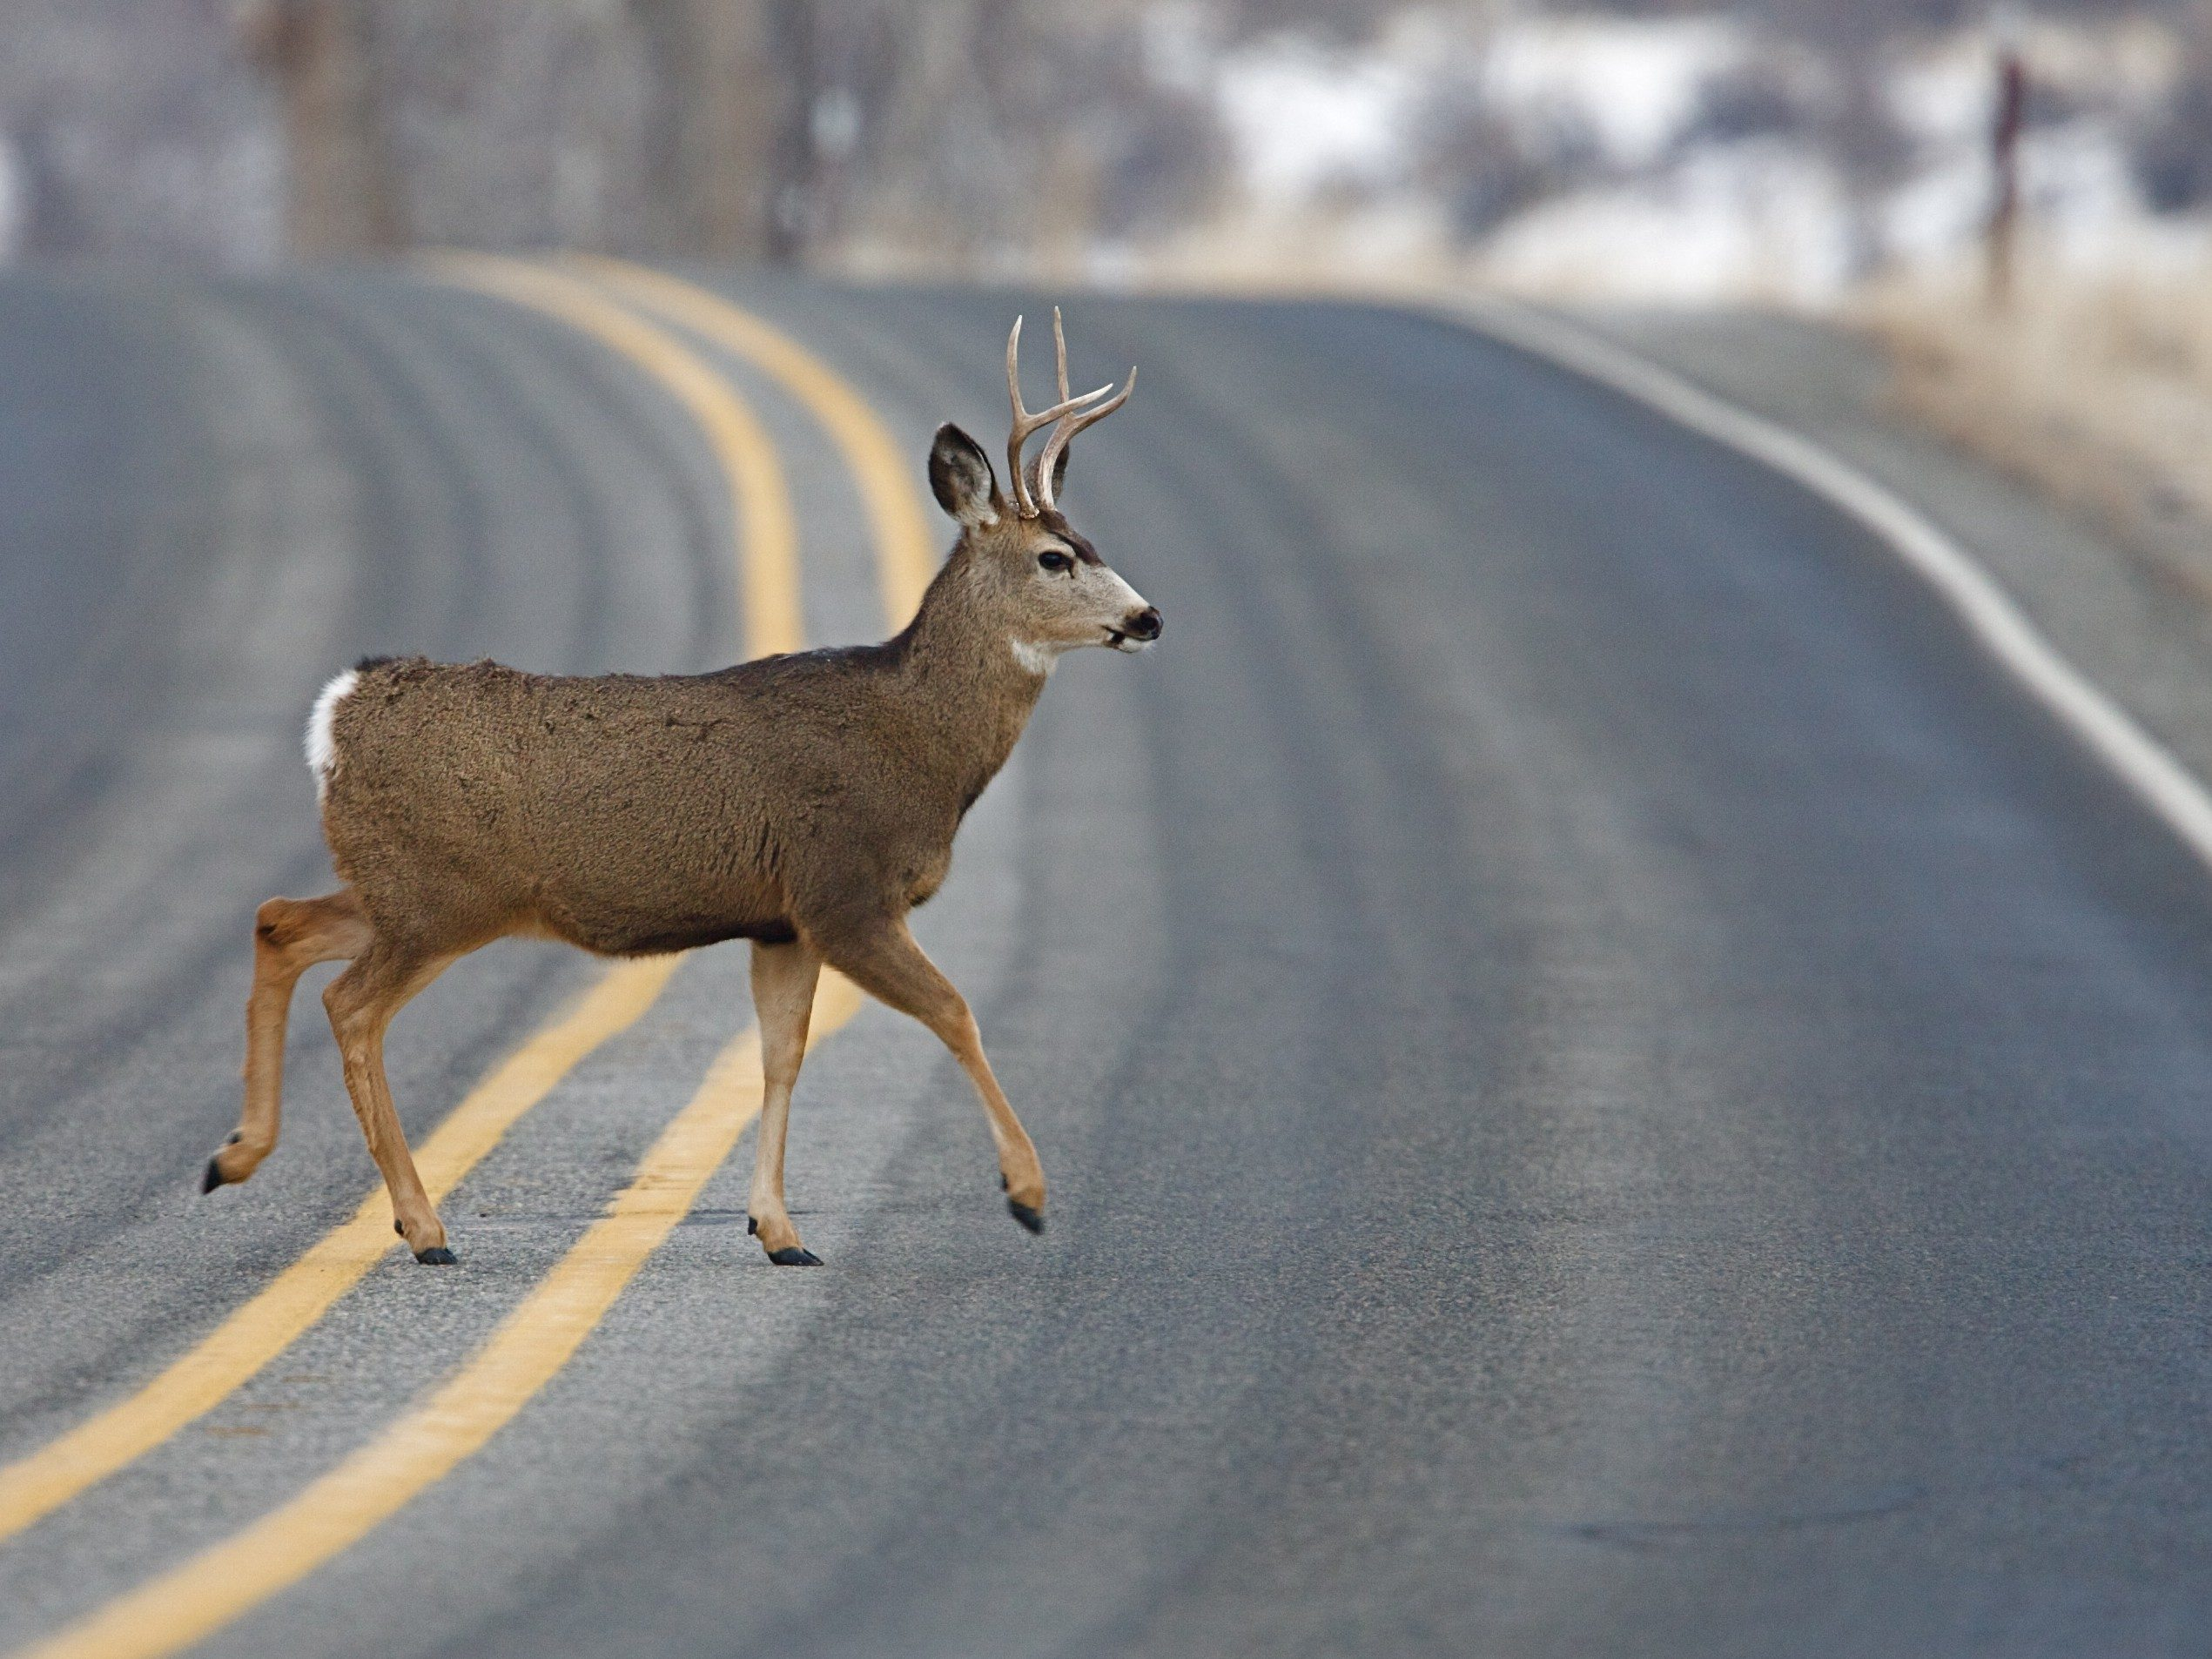 Driving tip #10: Watch for wildlife.